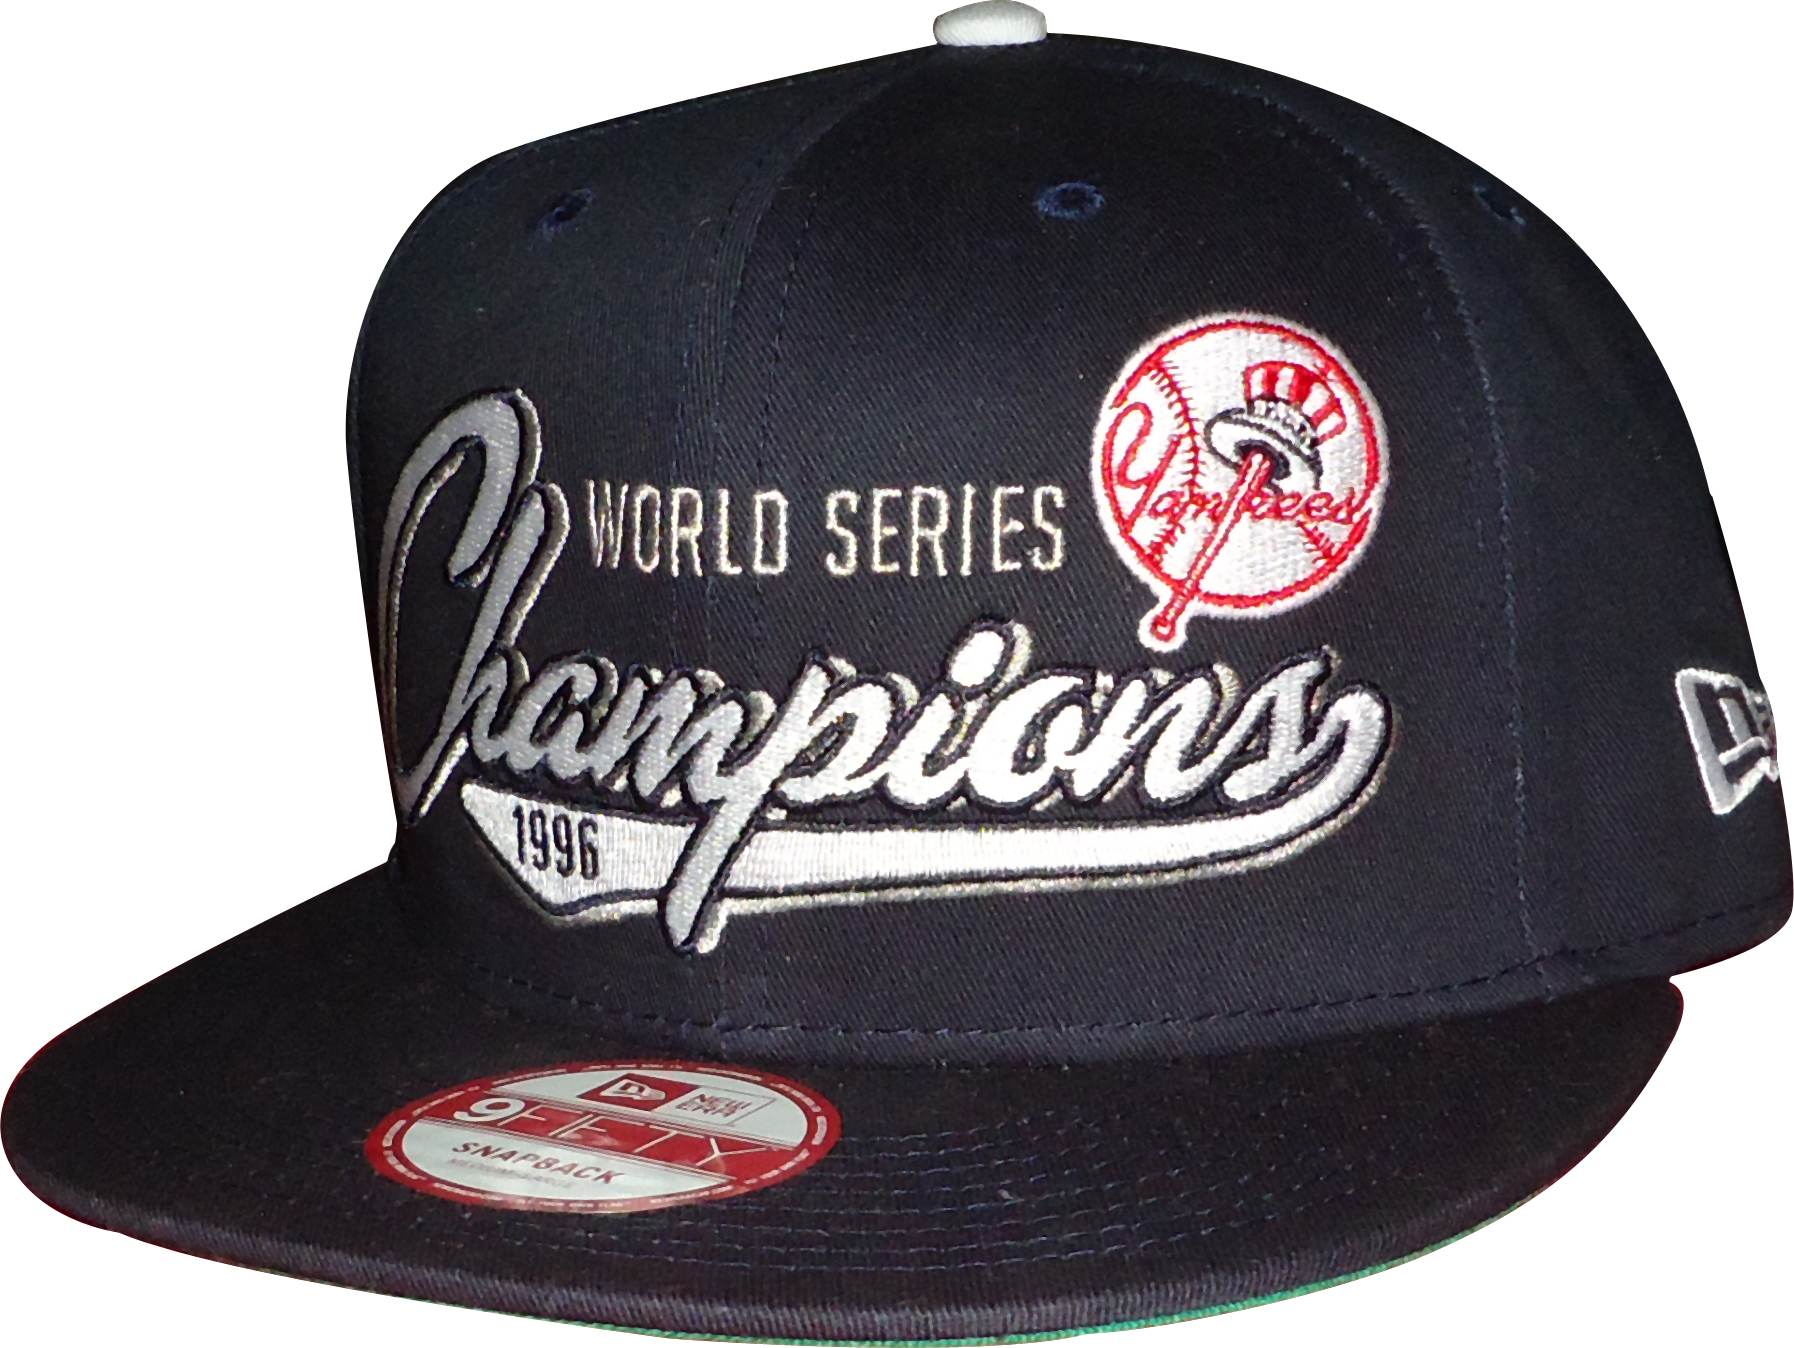 newest 9f666 ba158 ... NEW WITH TAGS - authentic MLB BASEBALL licensed product produced by NEW  ERA, Imported.